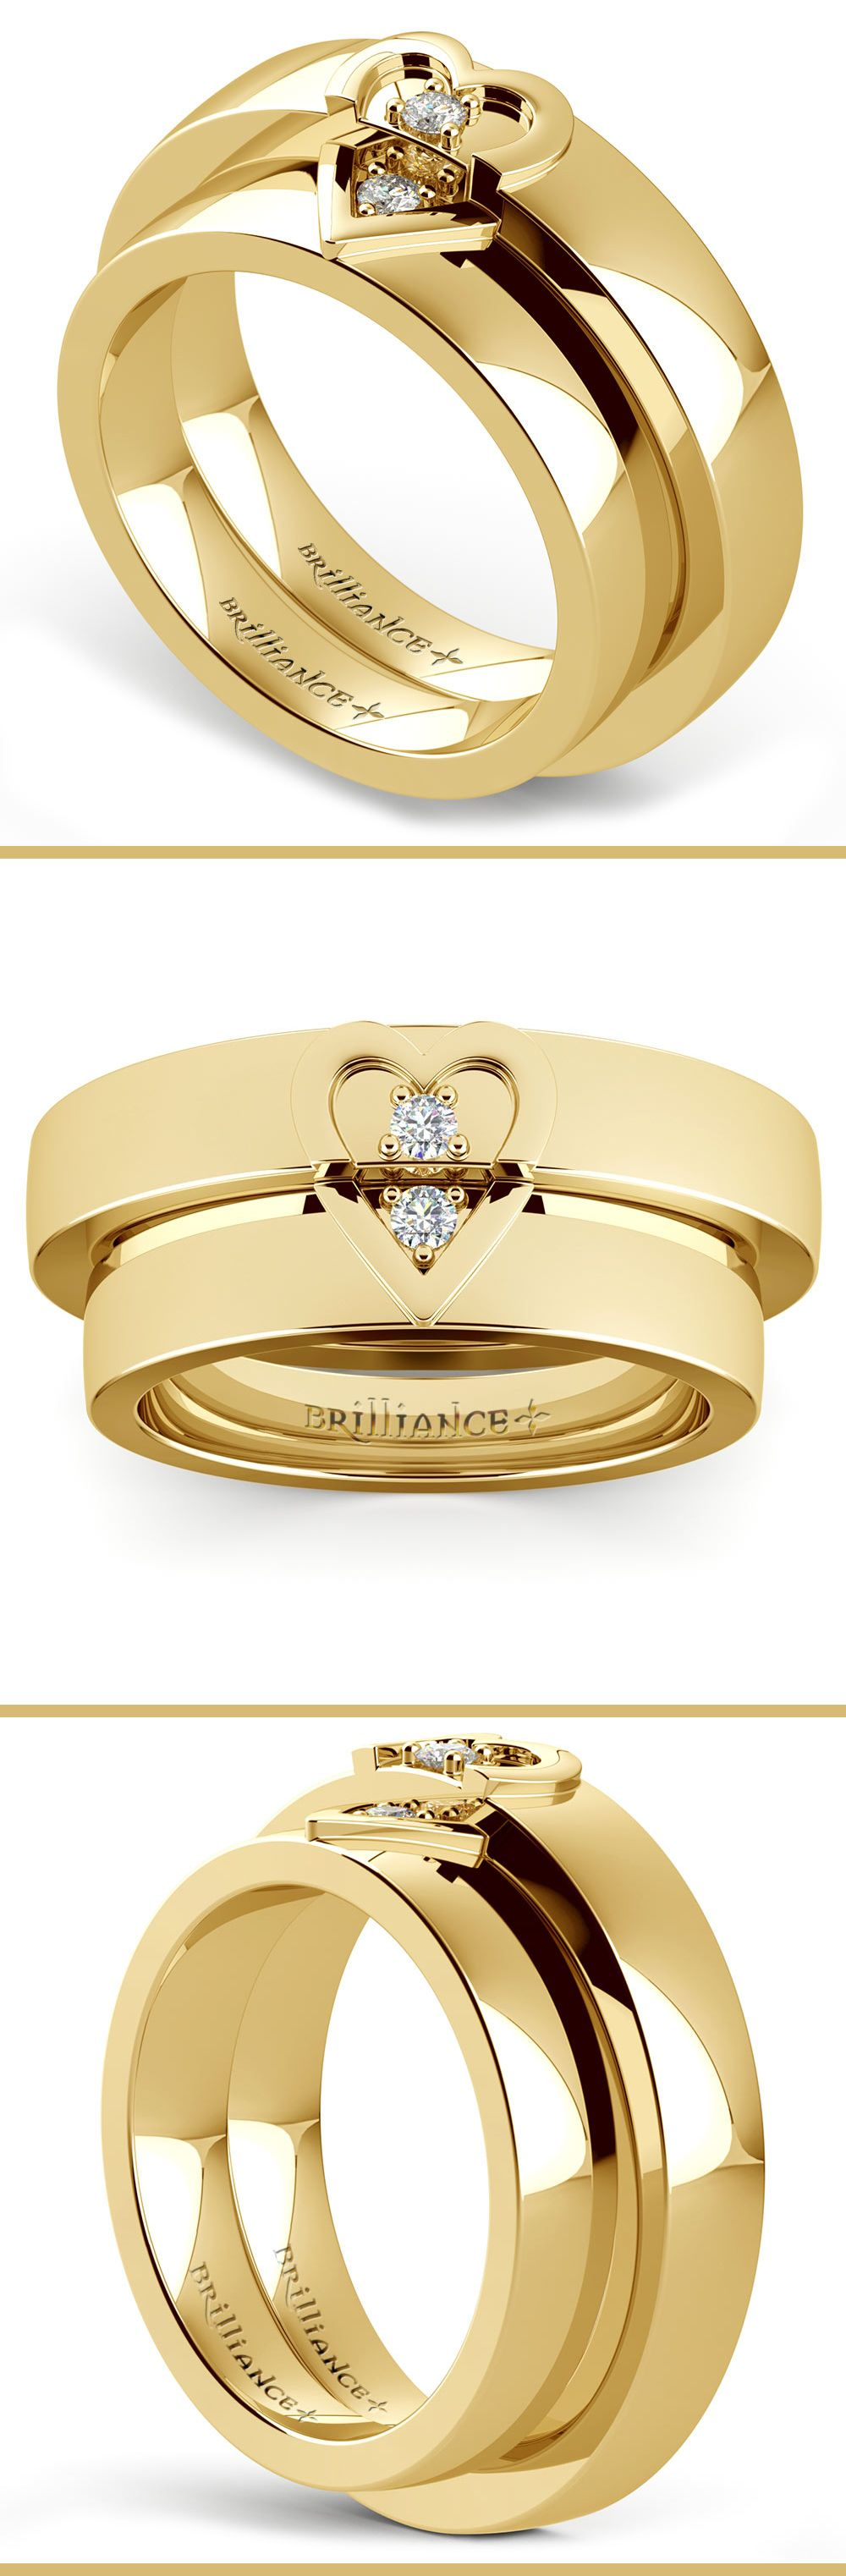 Matching his and hers 5 mm wedding bands in yellow gold feature a